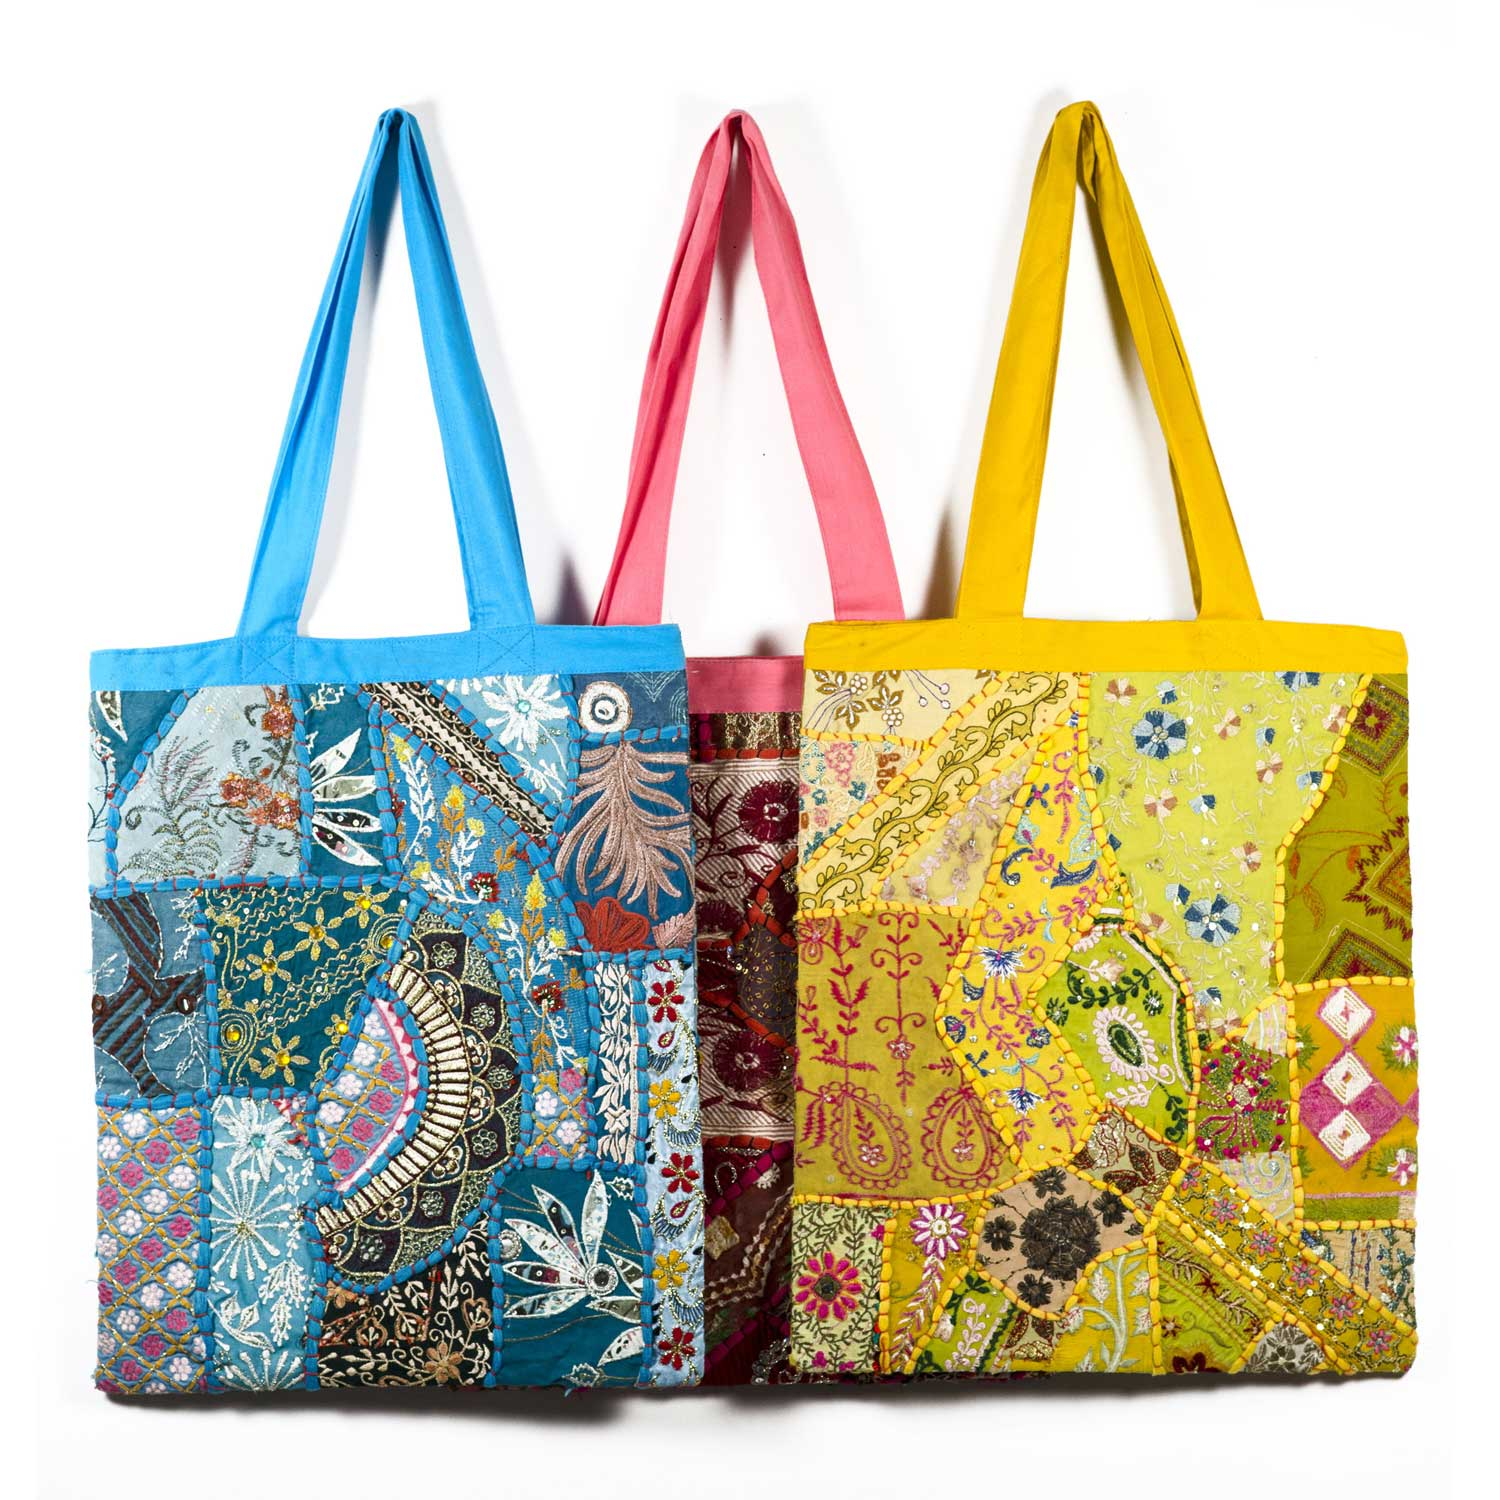 Color Splash Tote- Assorted - Sold Individually